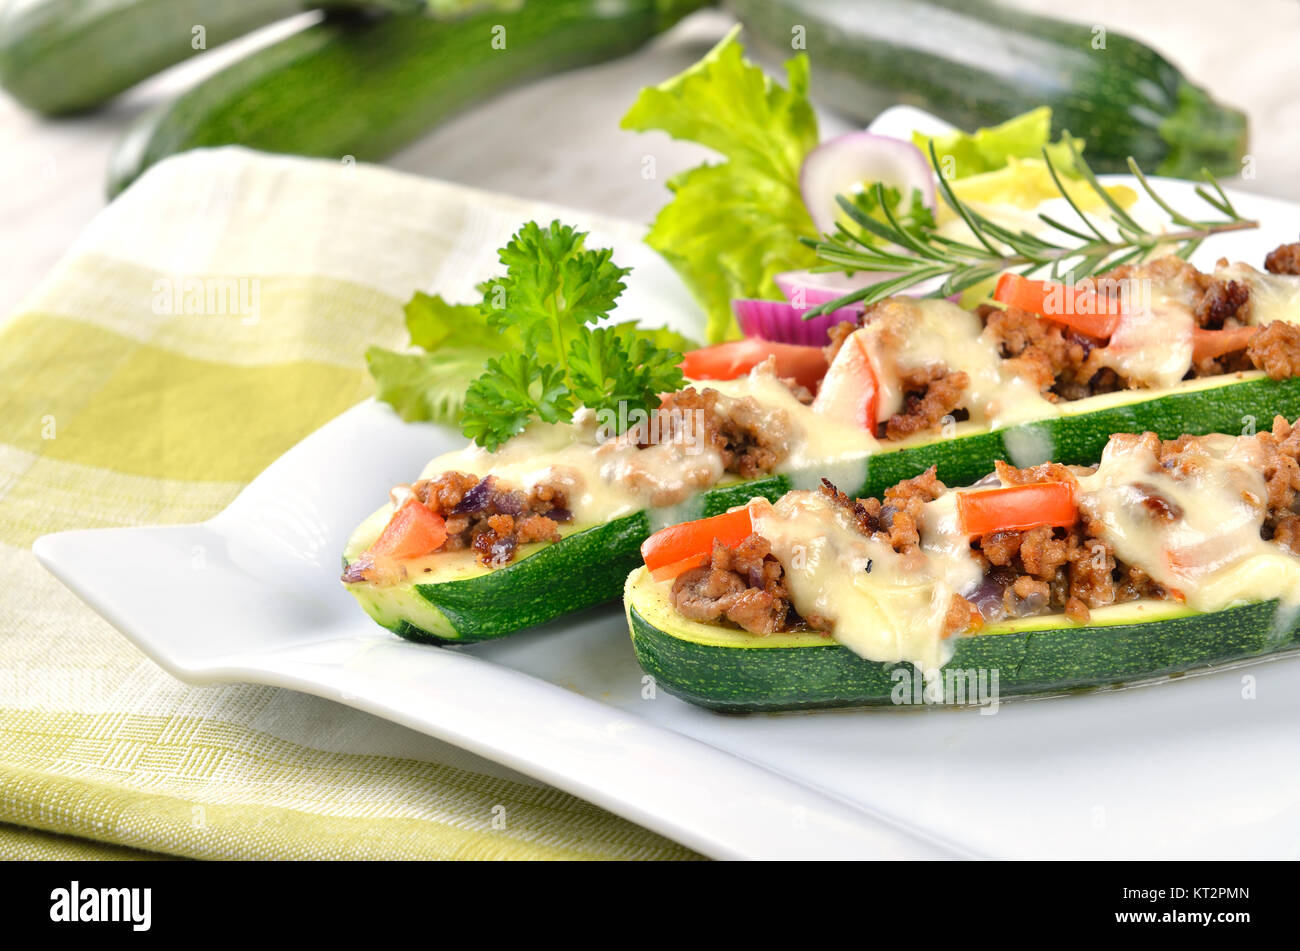 Zucchini halves stuffed with minced meat and gratinated with mozzarella - Stock Image